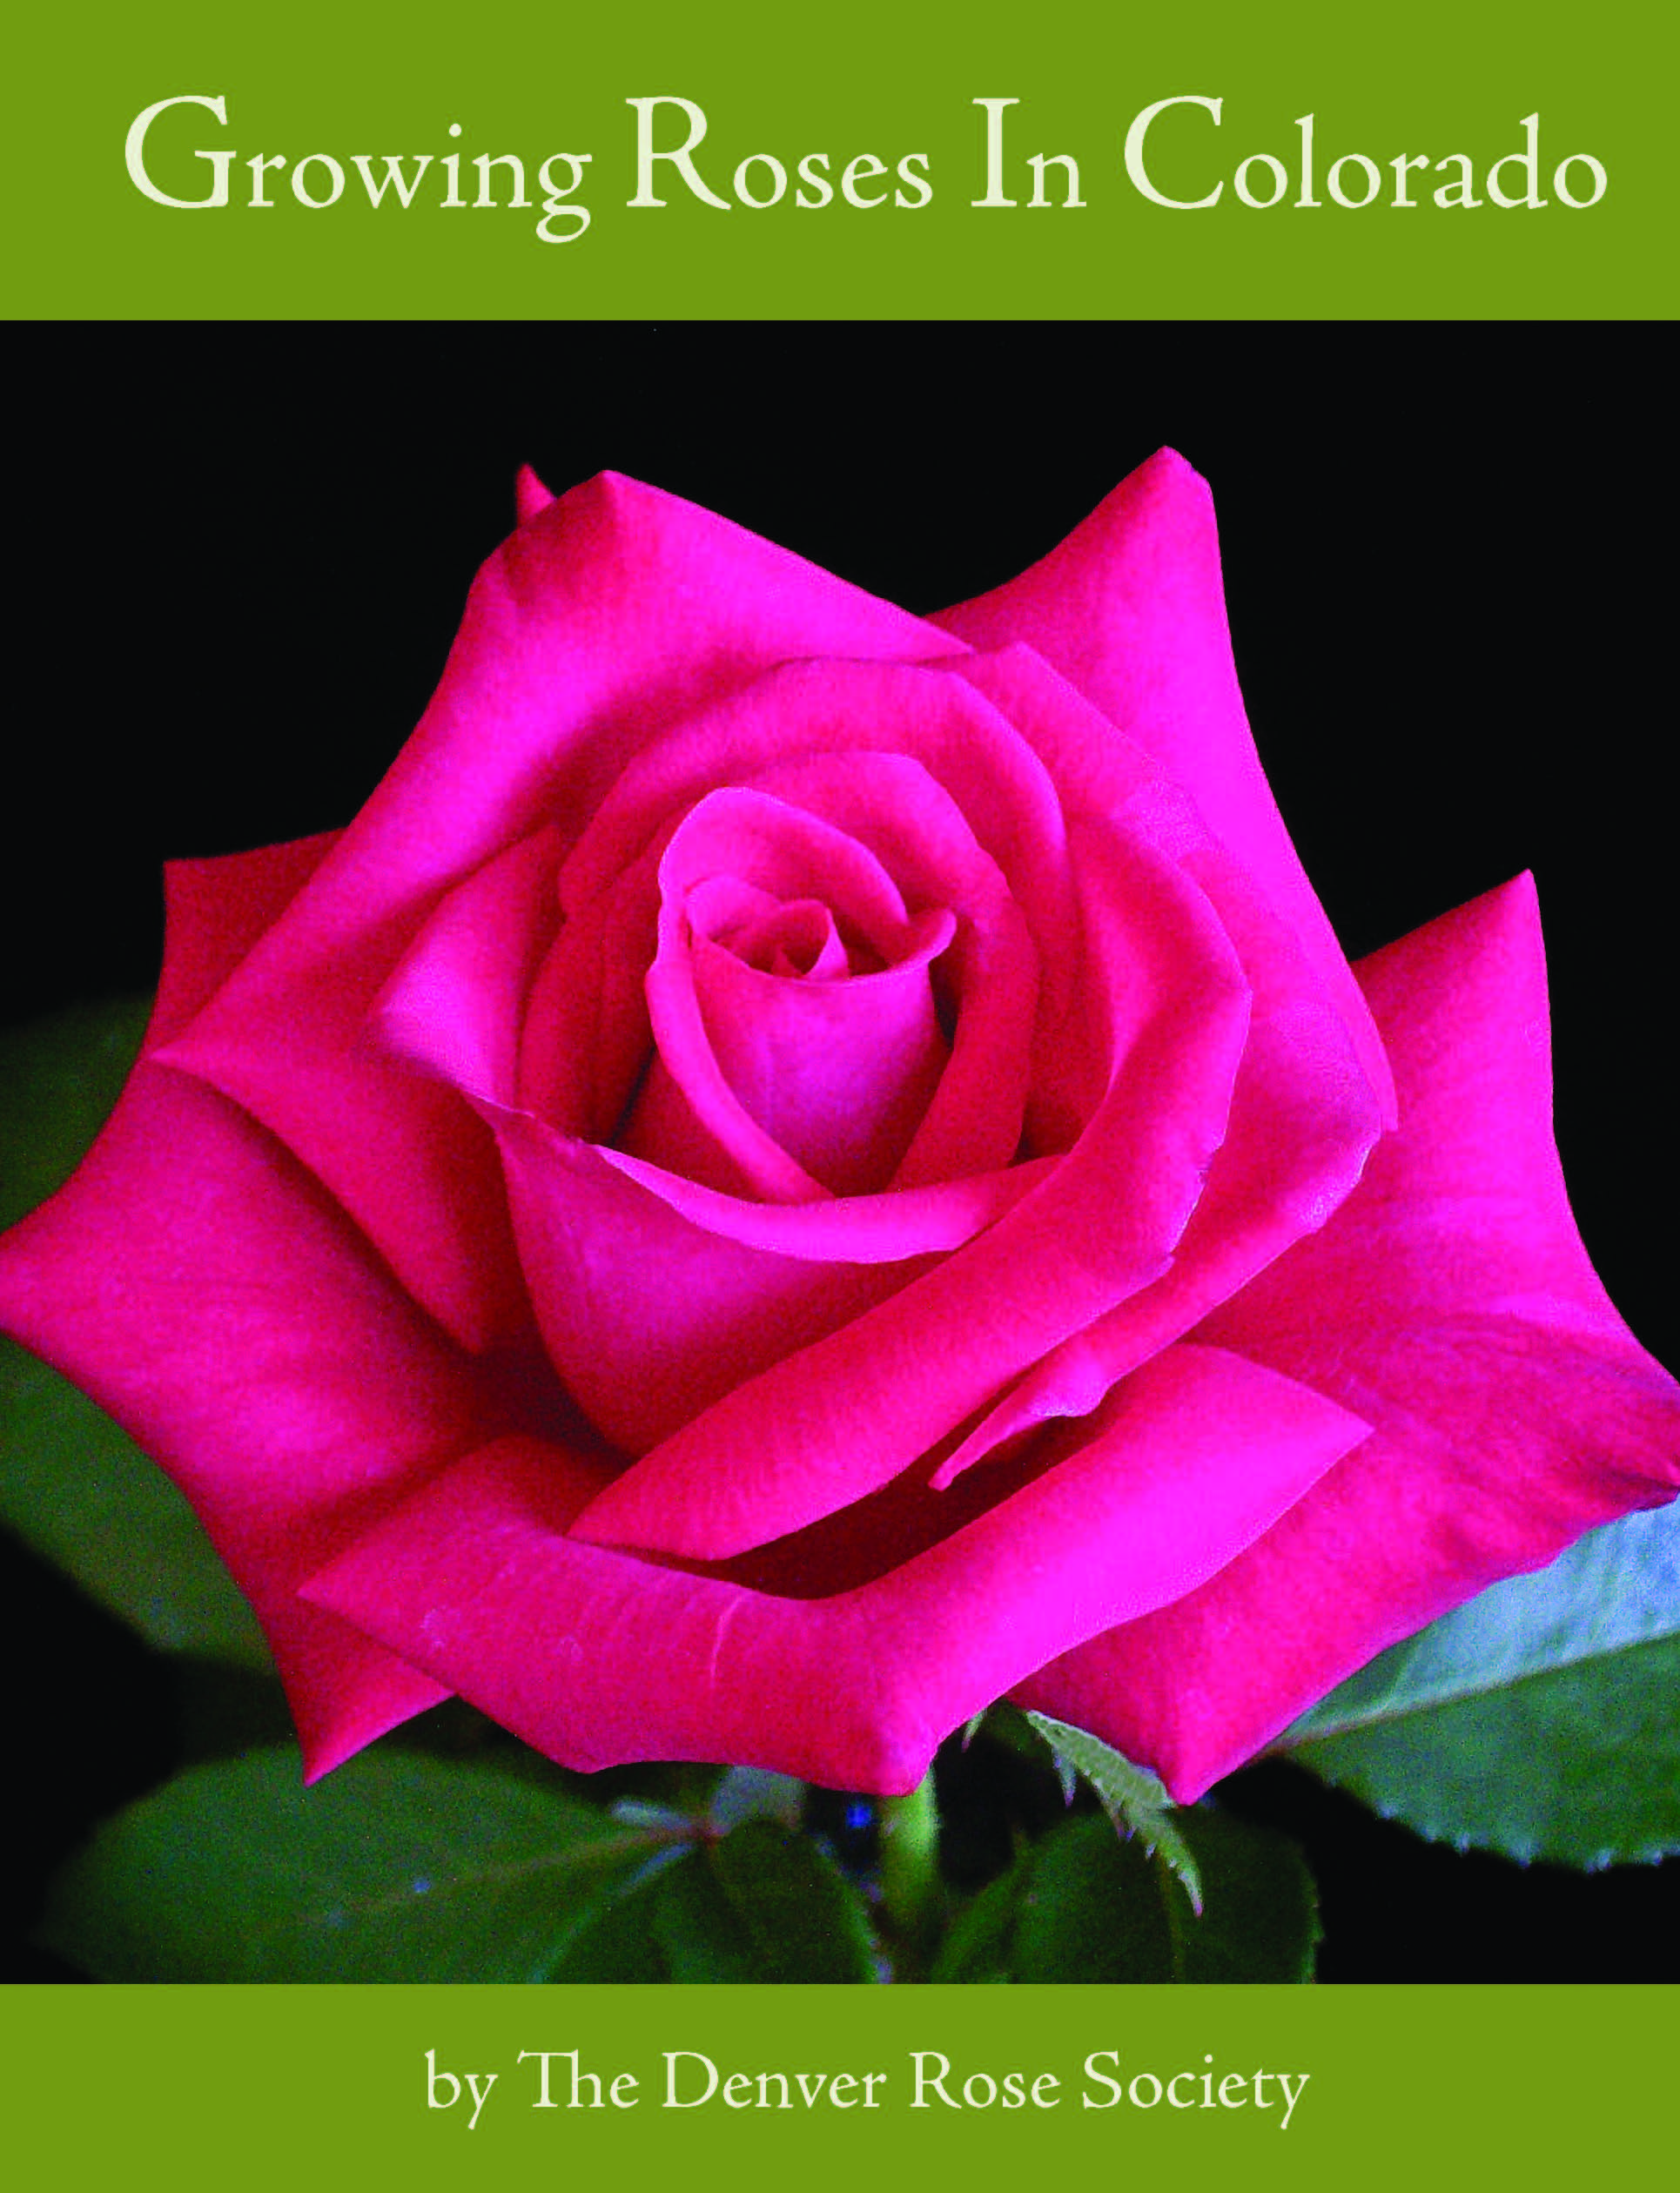 The Denver Rose Society's definitive guide to growing beautiful roses in Colorado